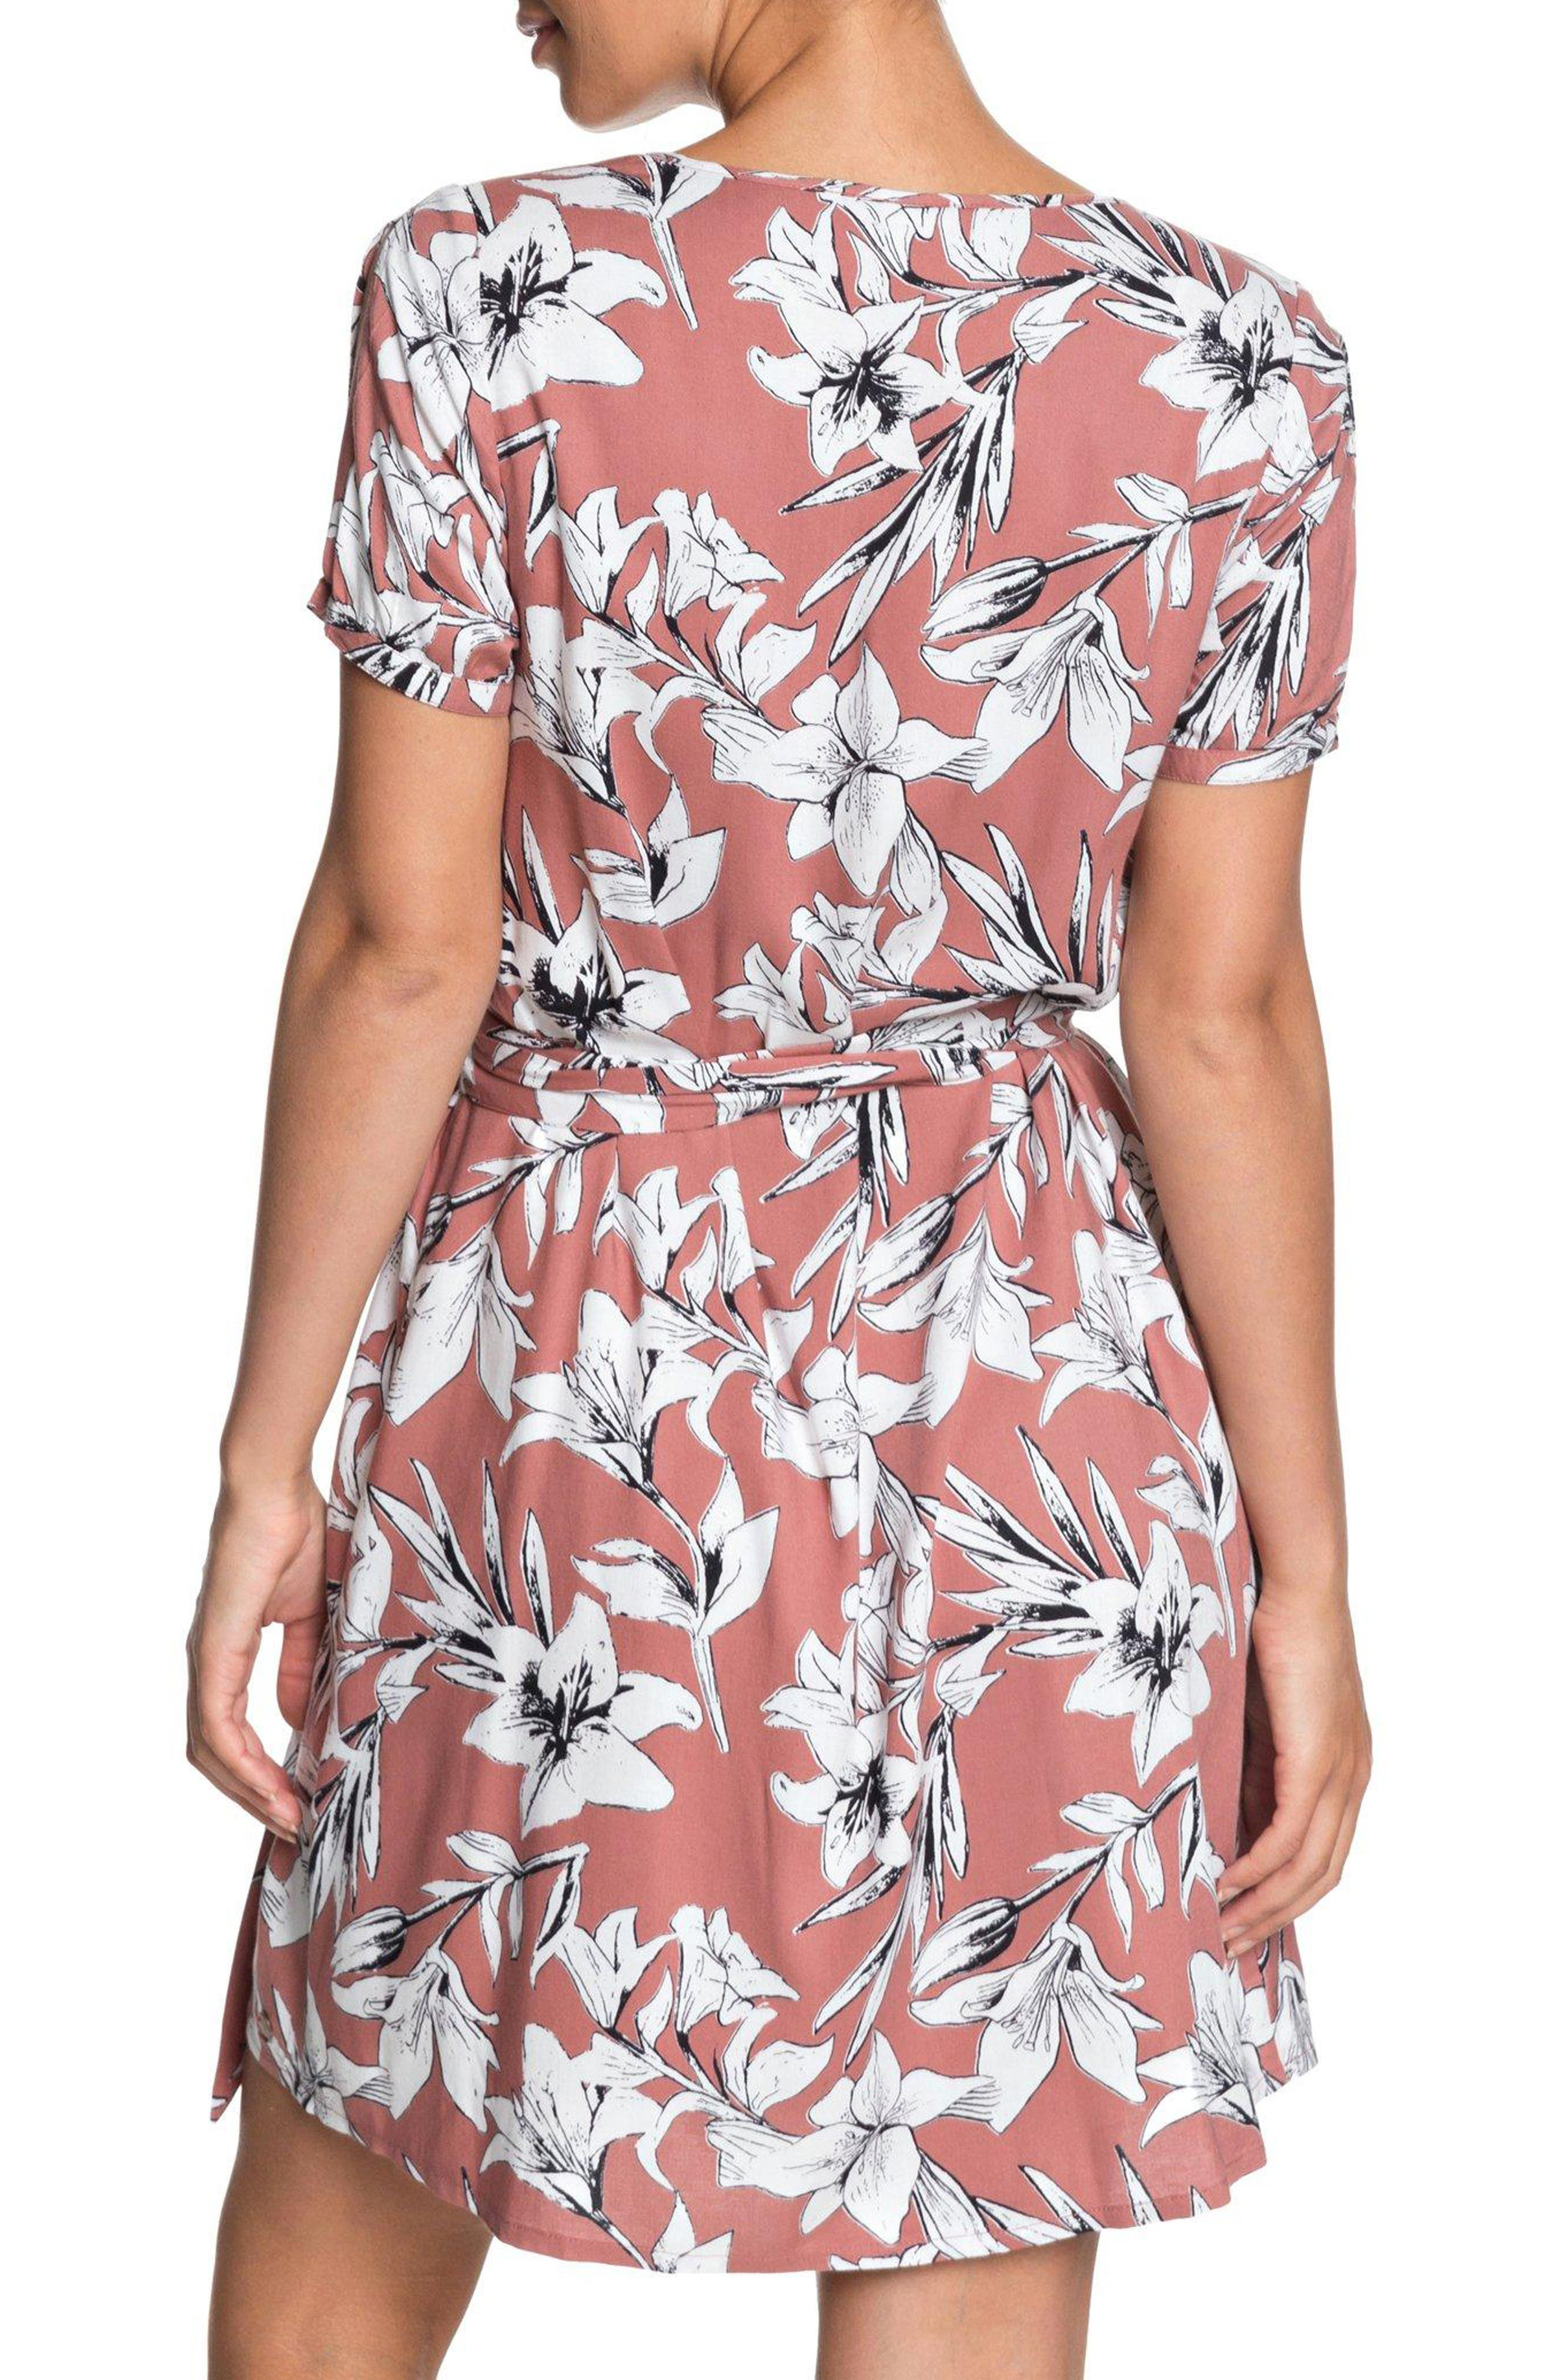 Monument View Floral Print Wrap Dress,                             Alternate thumbnail 2, color,                             WITHERED ROSE LILY HOUSE